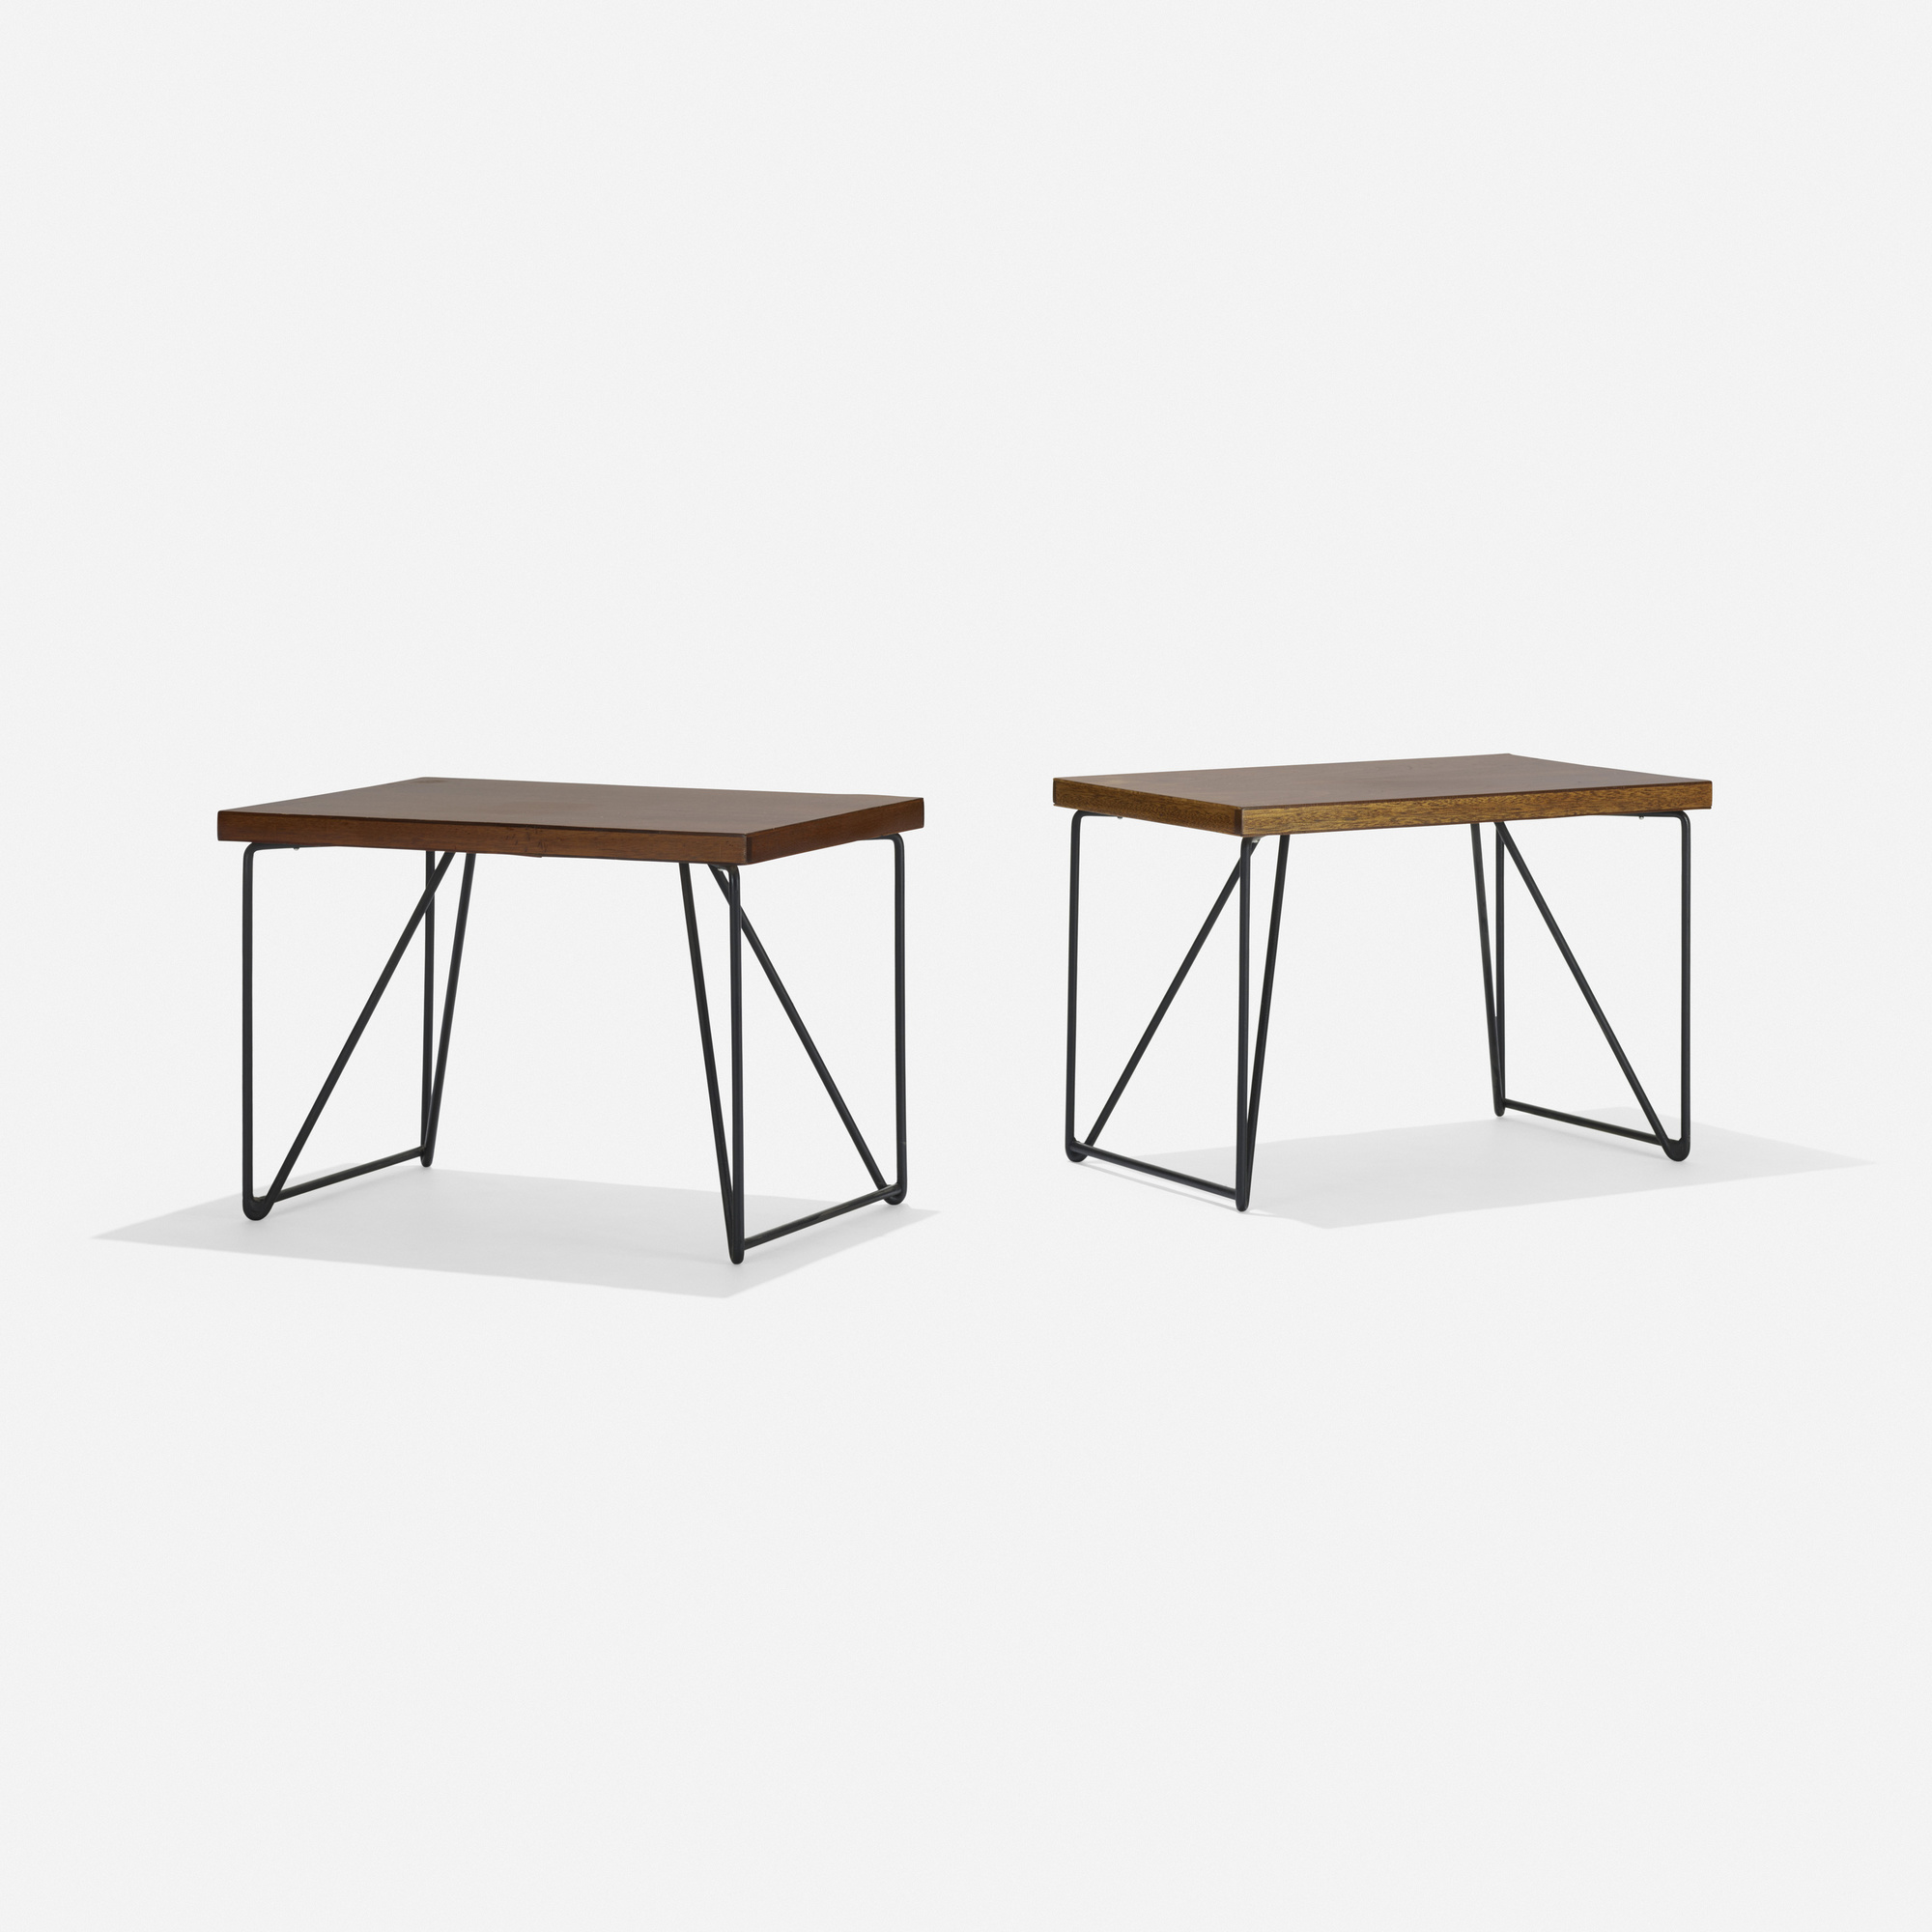 175: Luther Conover / occasional tables, pair (1 of 2)